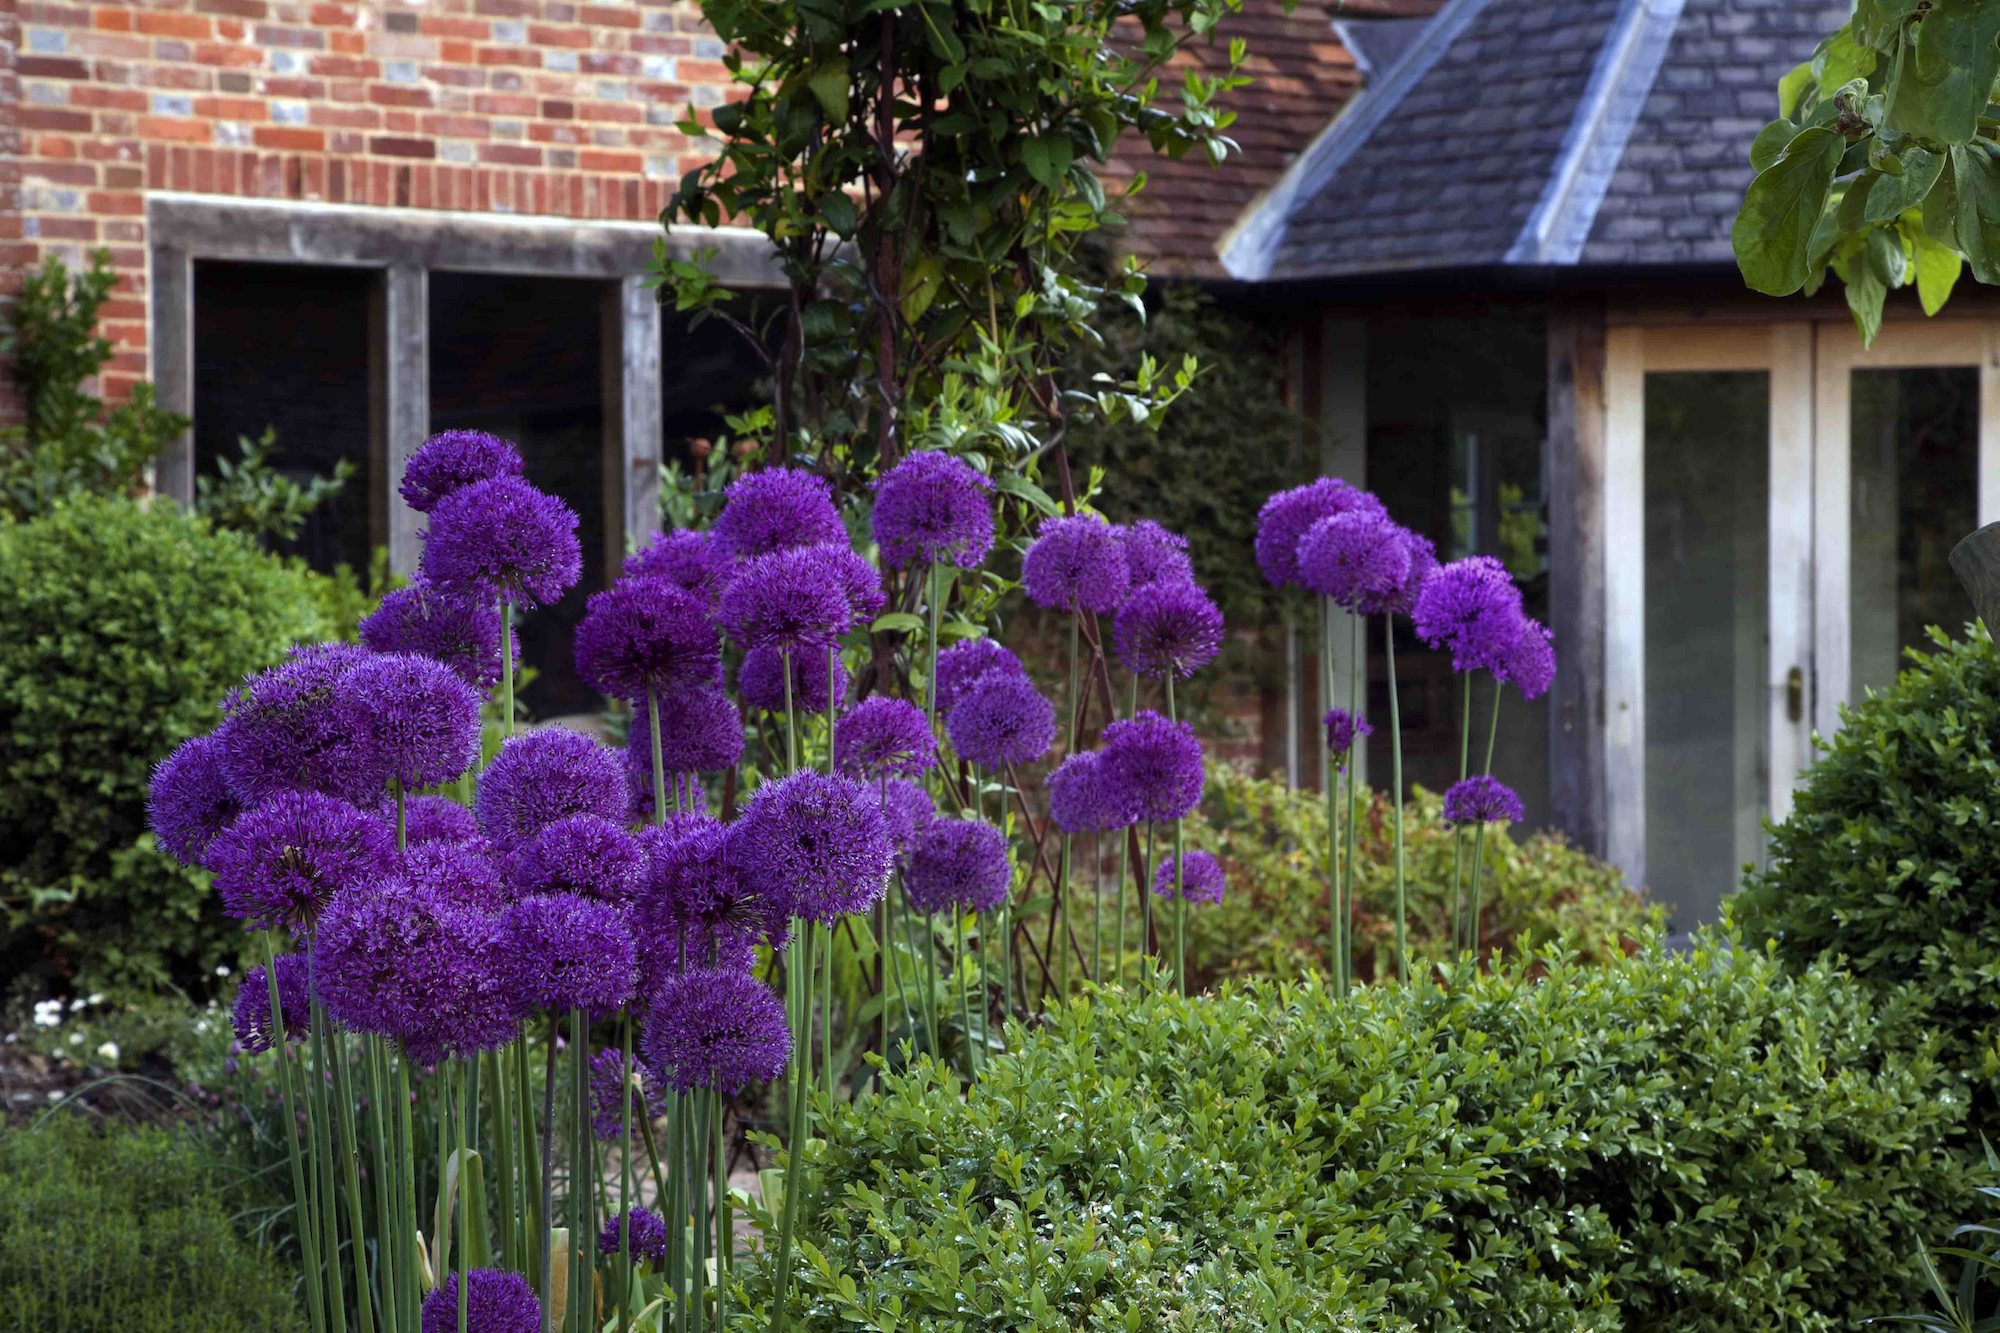 Landscaping in Kent, garden Designer Roger Platts' Traditional English Garden